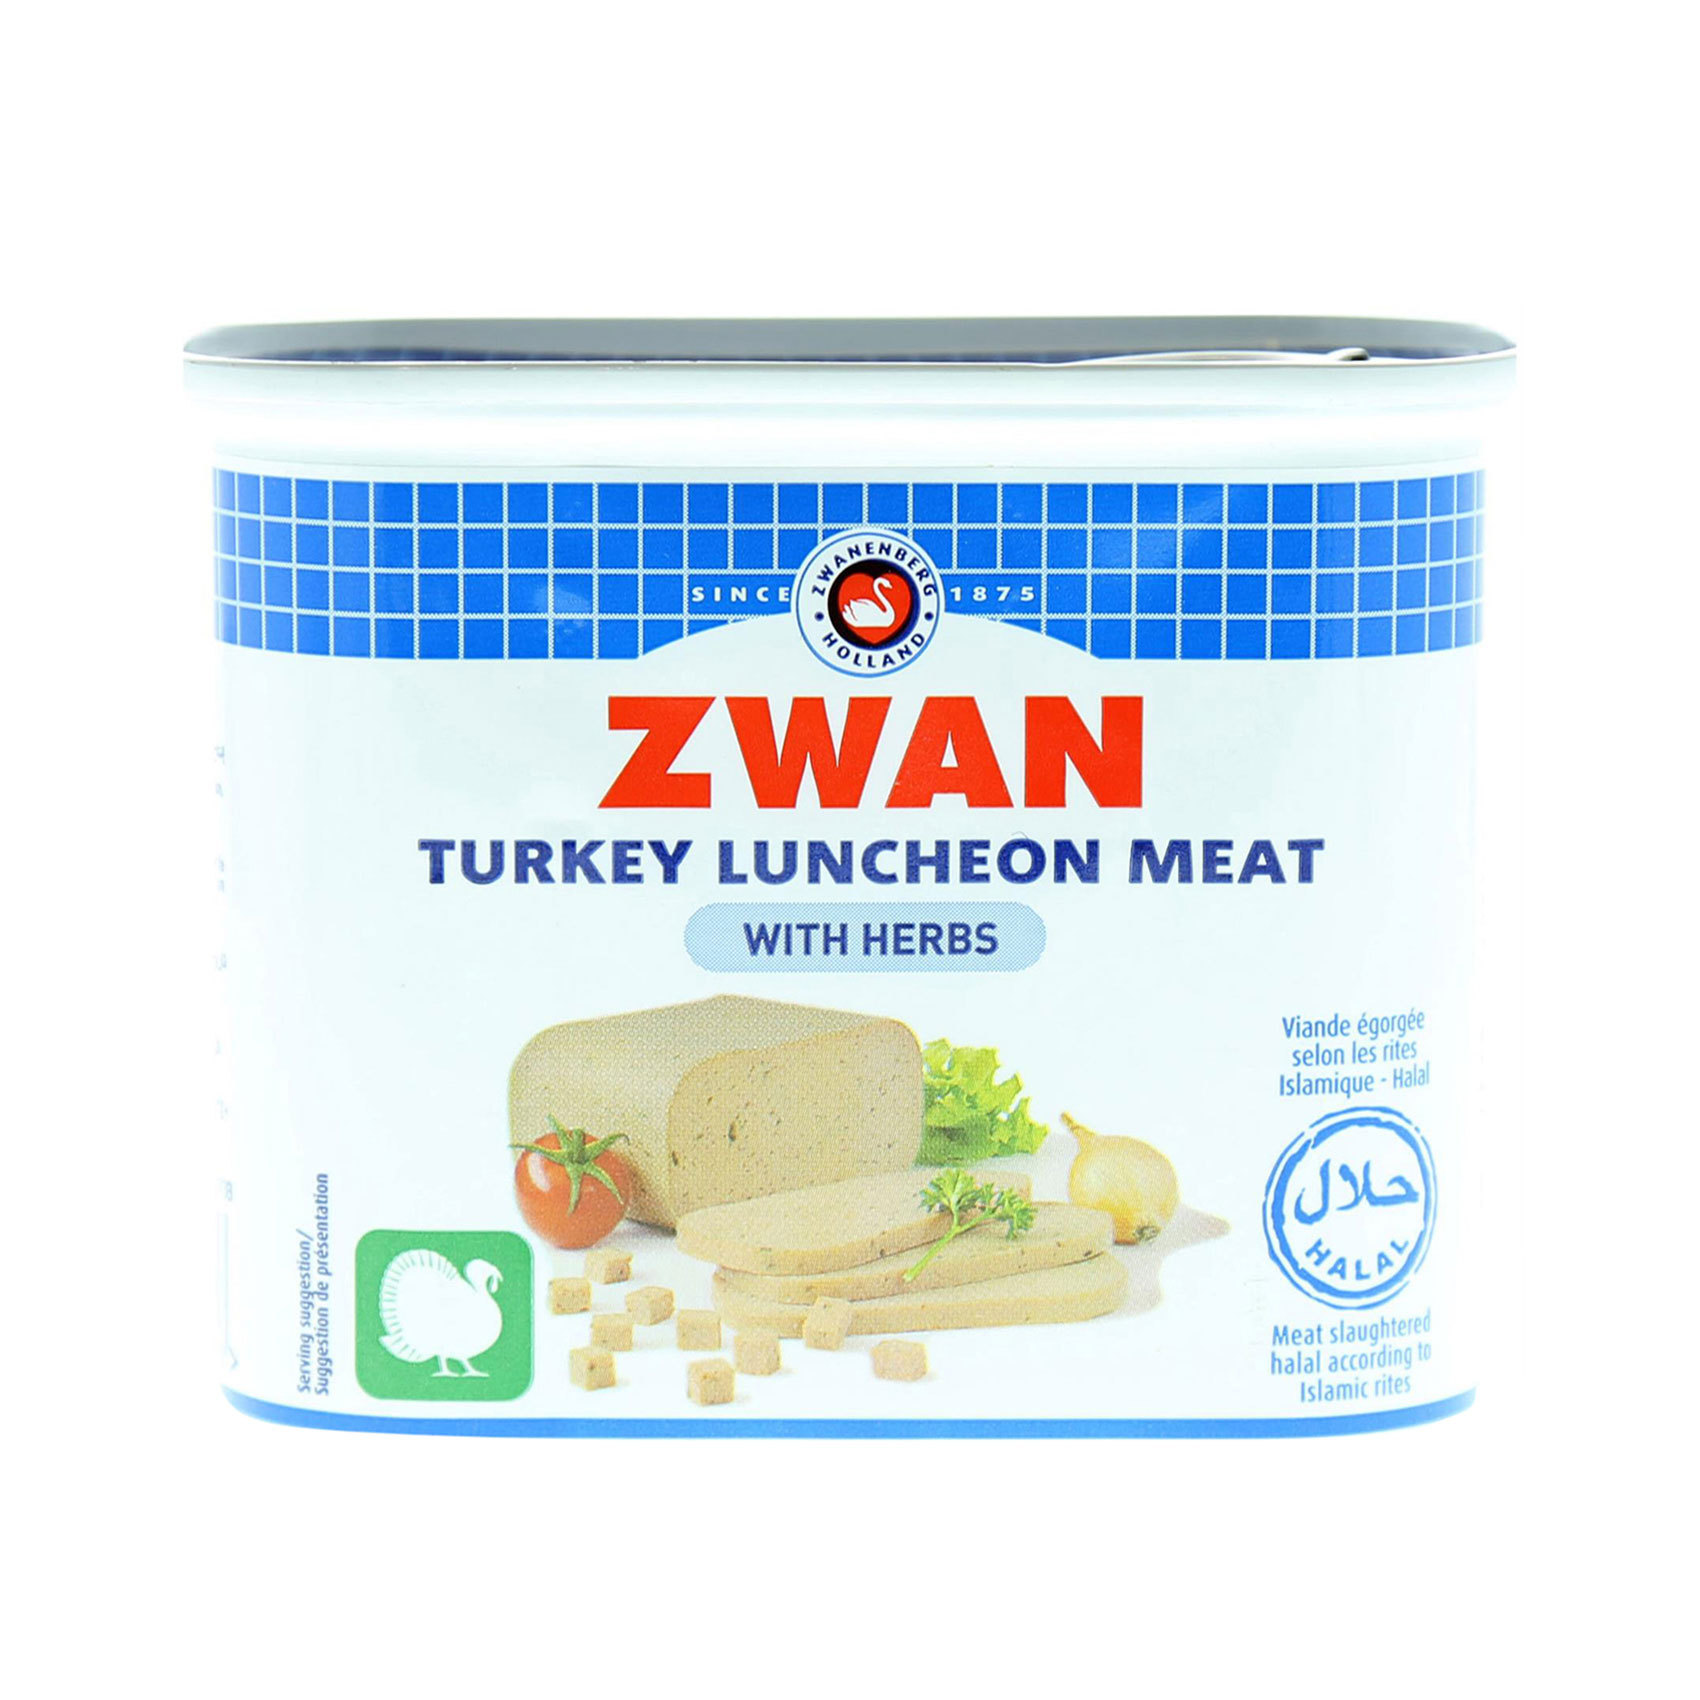 ZWAN LUNCHEON TURKEY MEAT 340GR